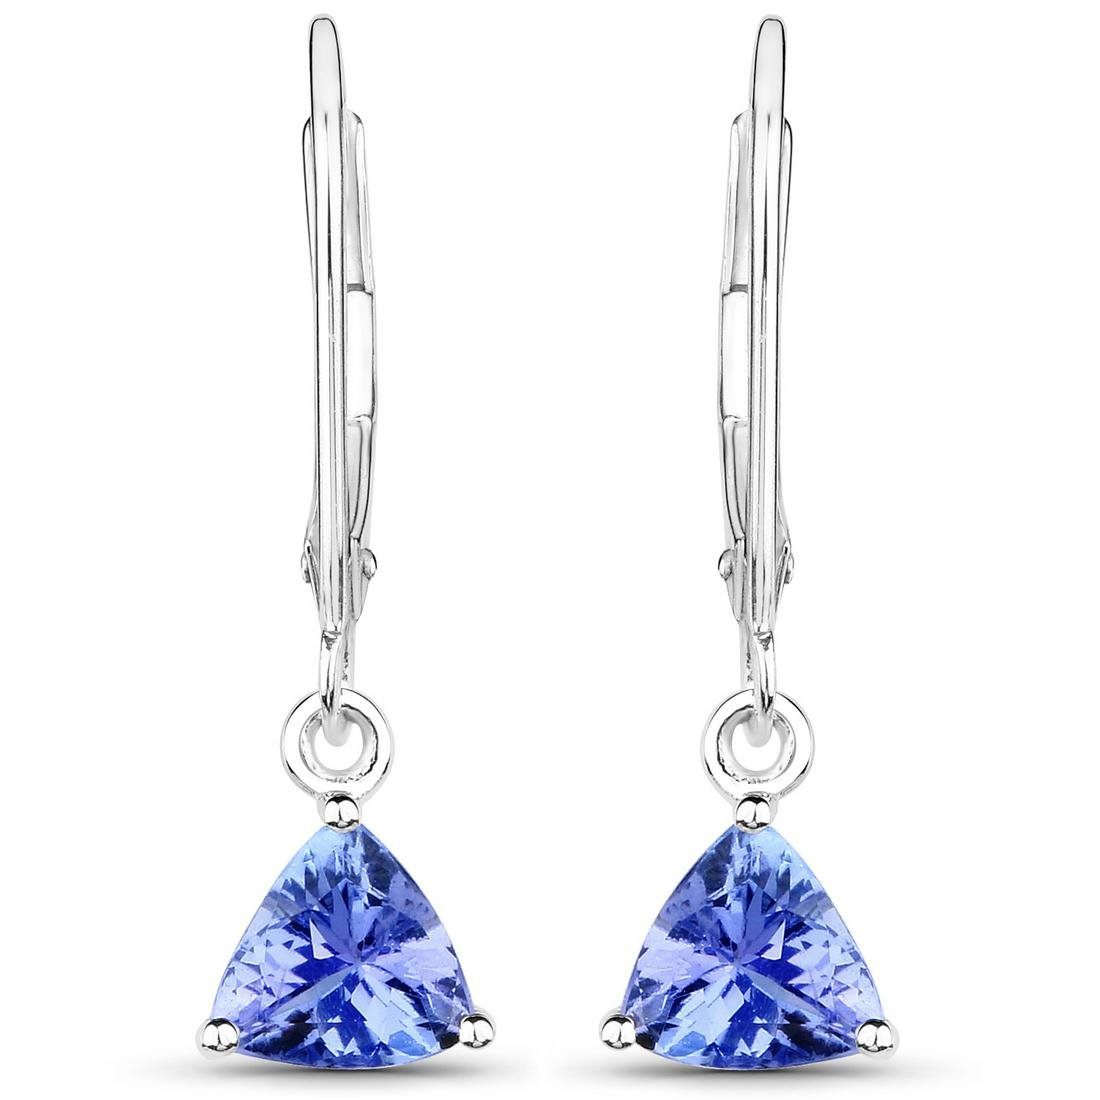 1.18 ctw Tanzanite Earrings 14K White Gold